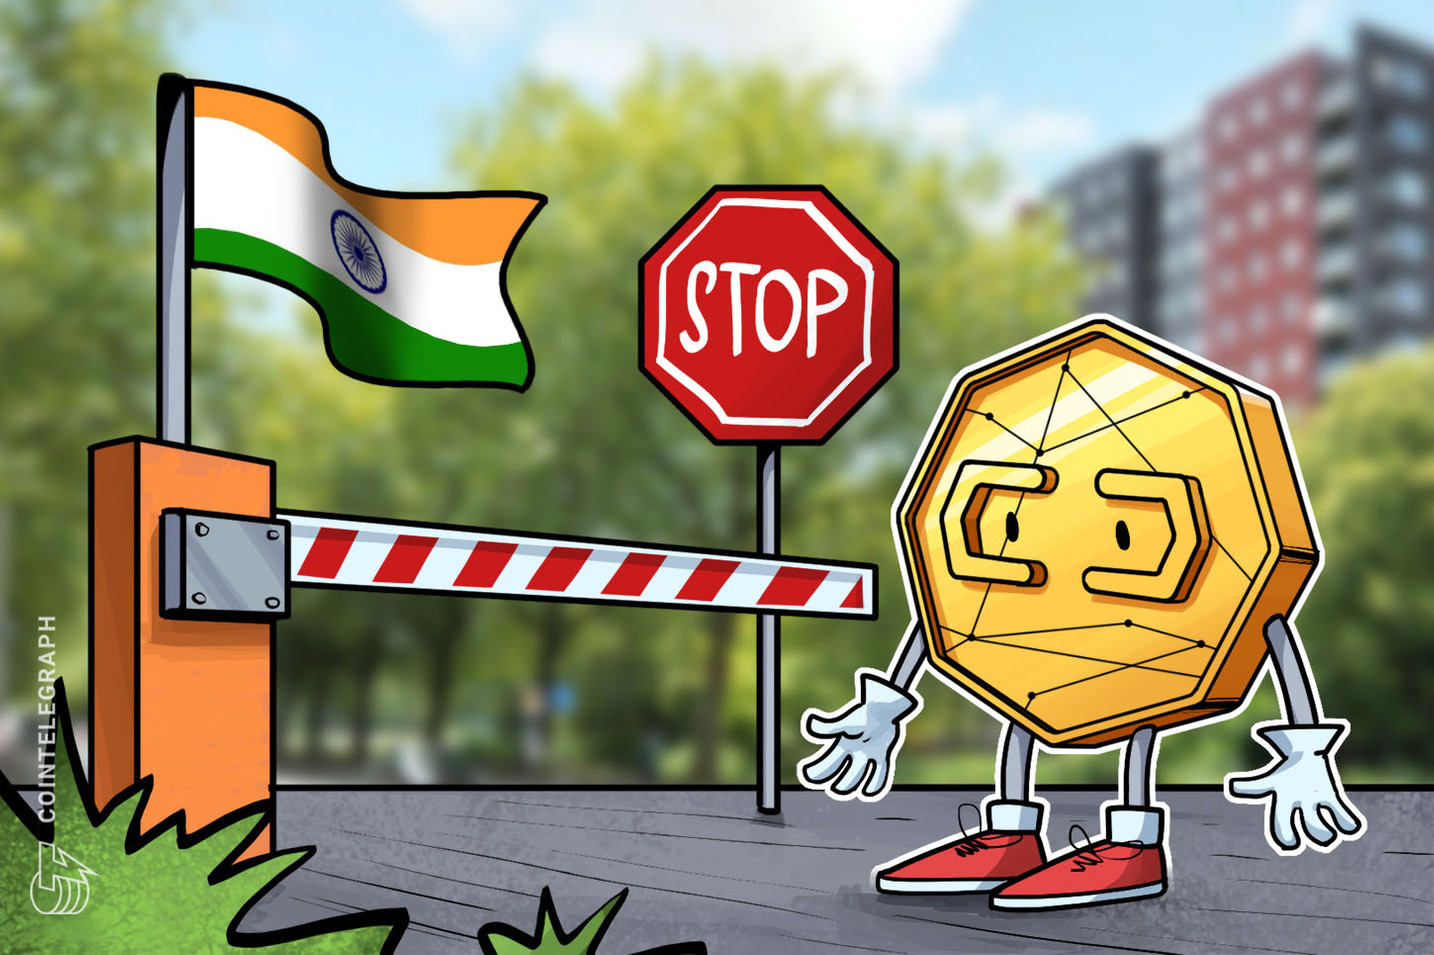 Some Indian Banks Are Still 'Arbitrarily' Refusing to Process Crypto Transactions